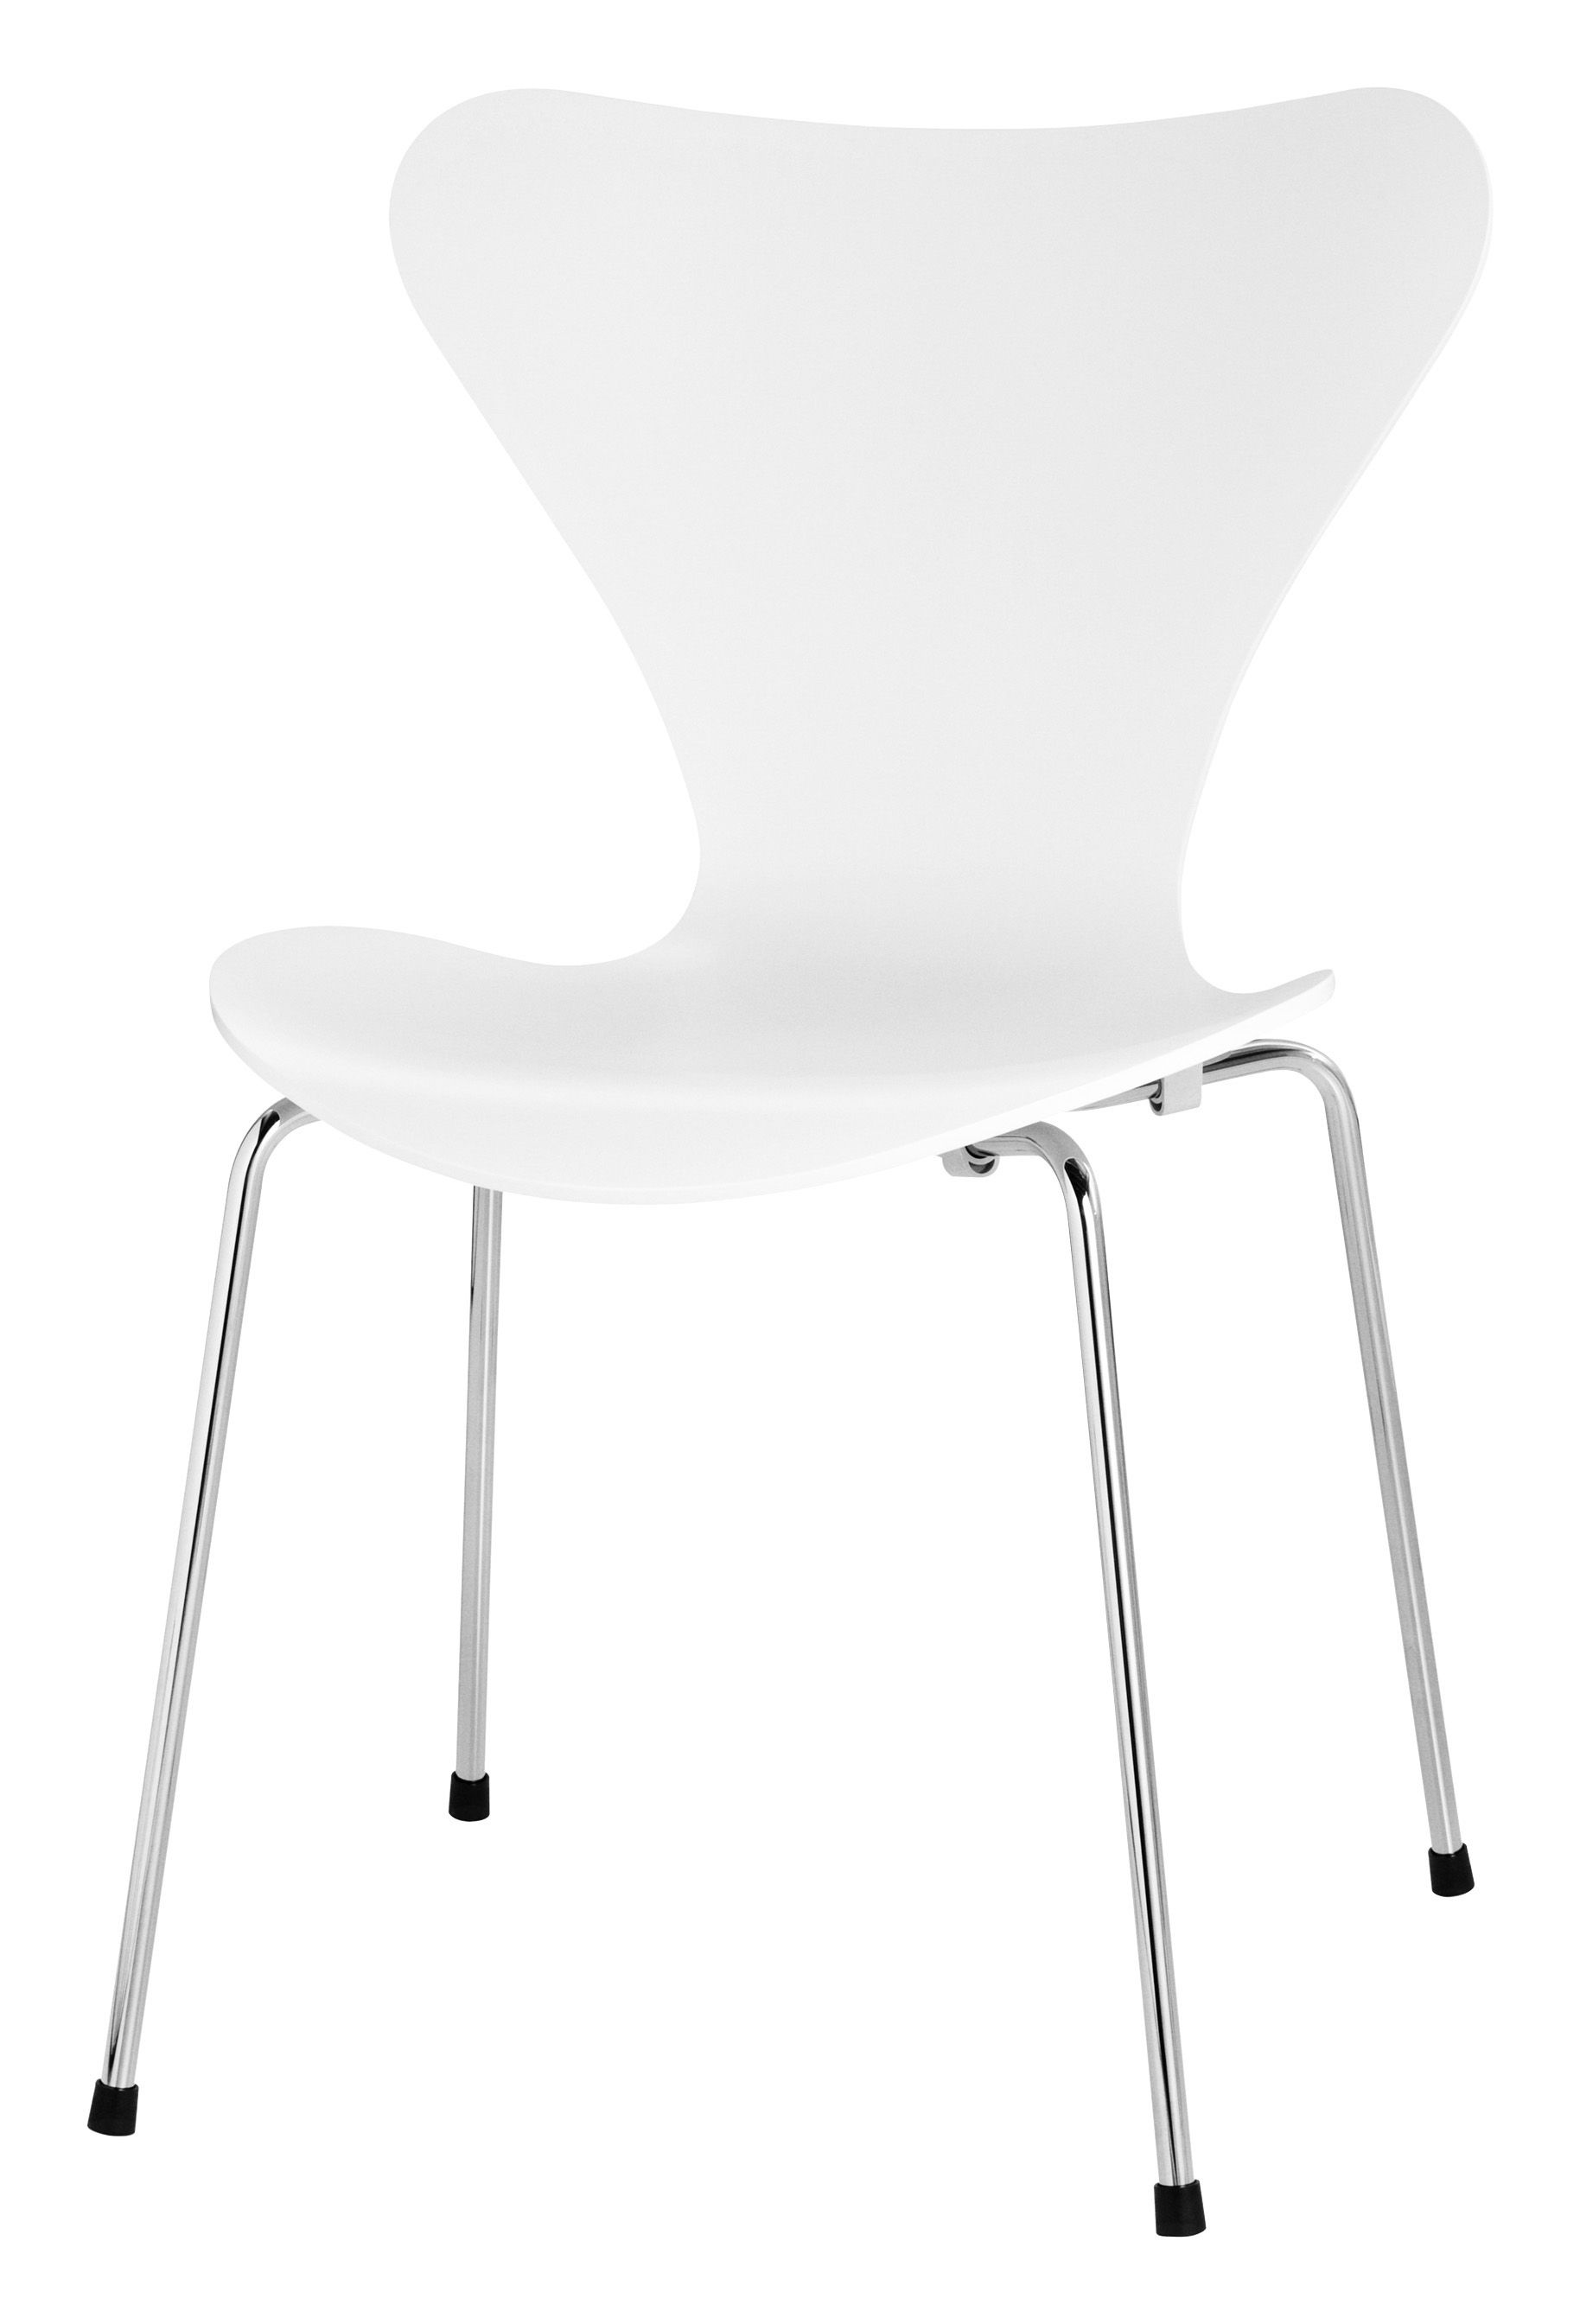 Furniture - Chairs - Série 7 Stacking chair - Ash by Fritz Hansen - Black tainted ash - Ashwood, Steel